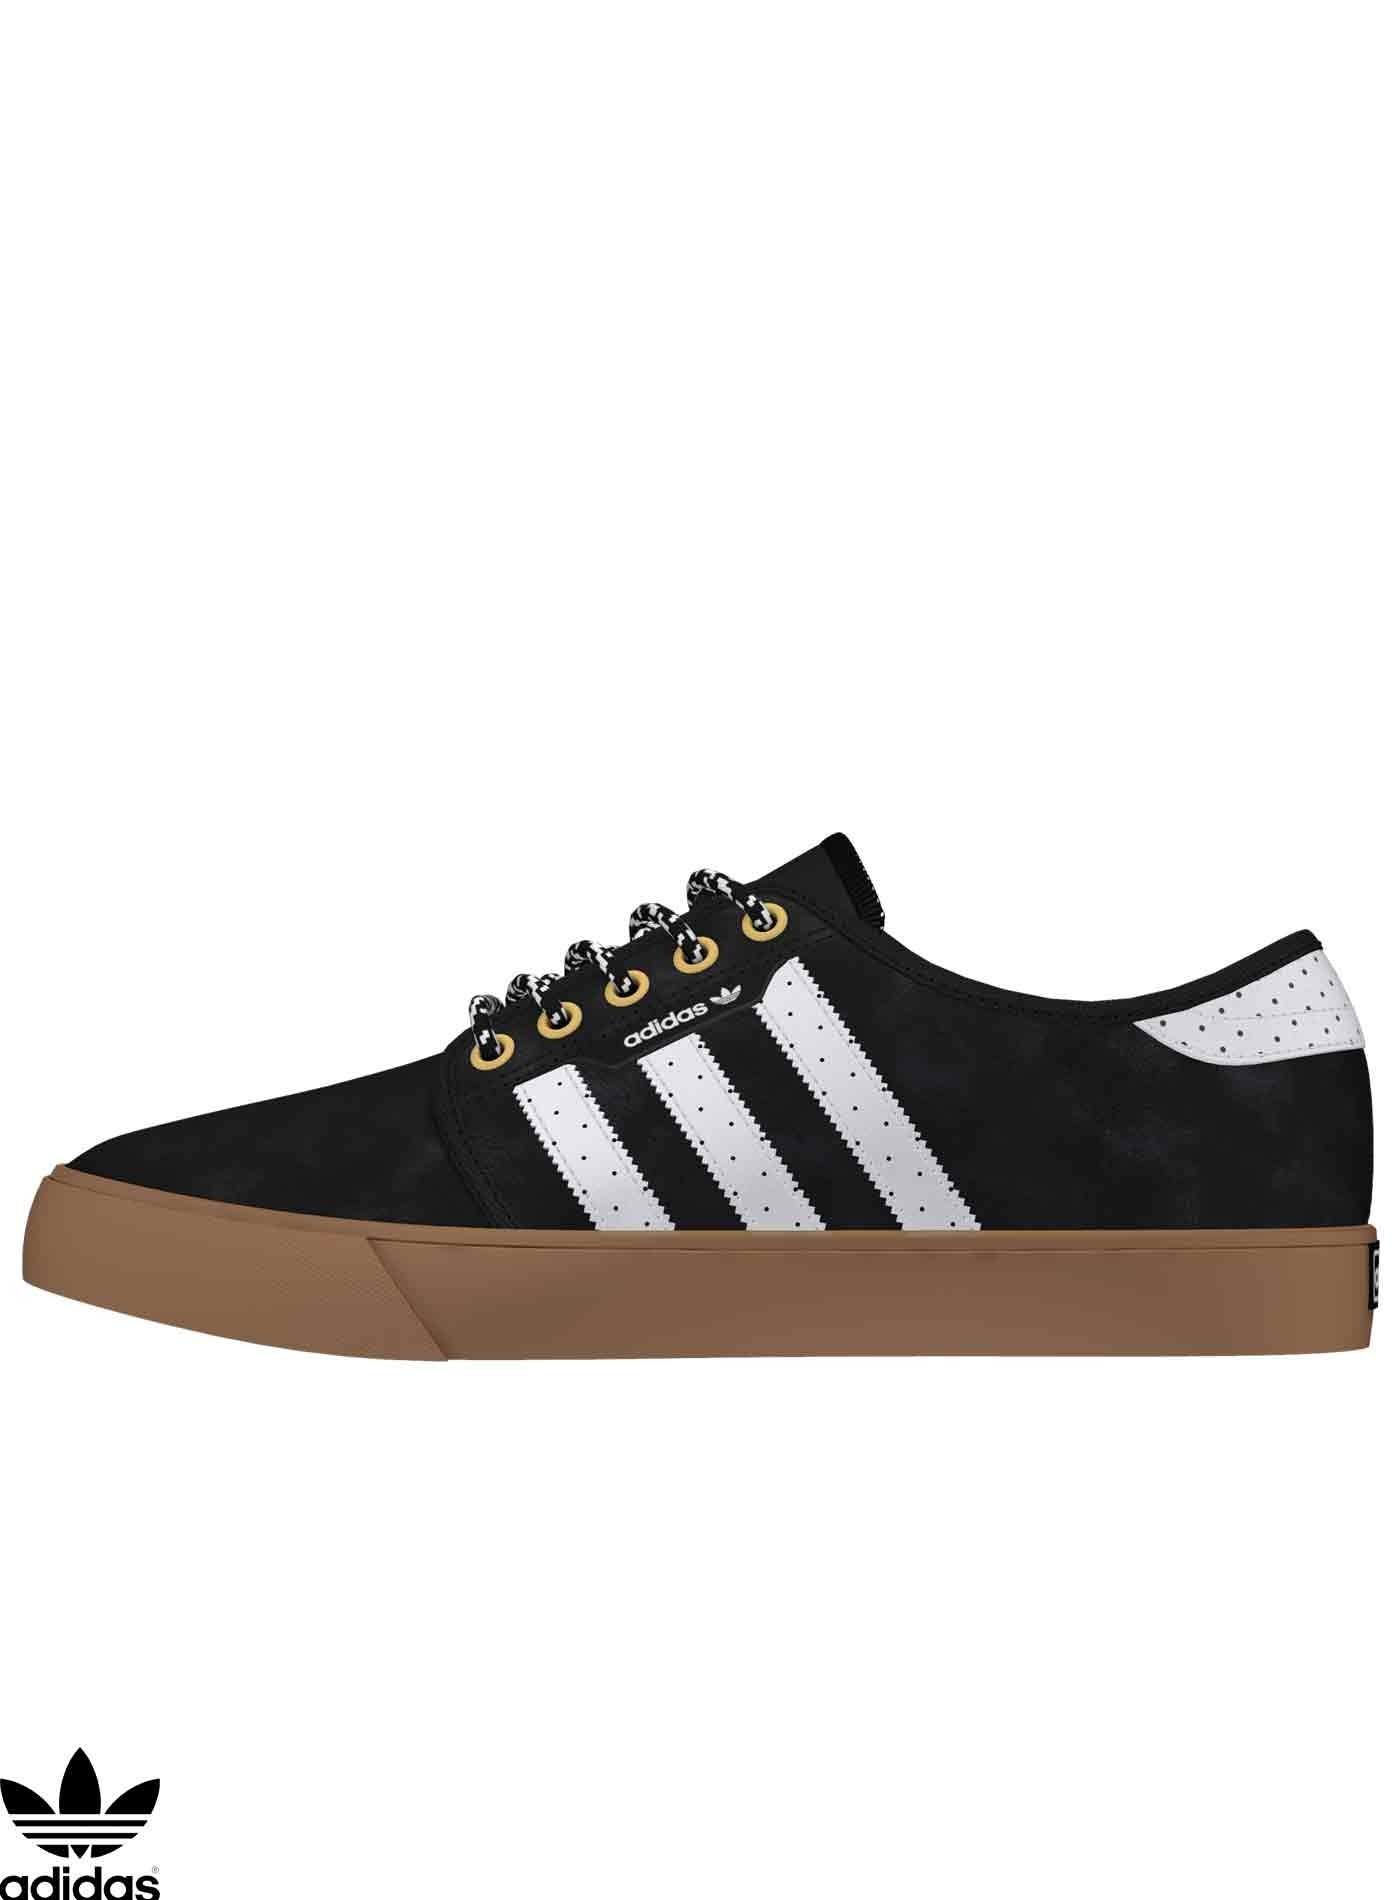 Adidas Skateboarding Seeley Core Black Skate Schuhe